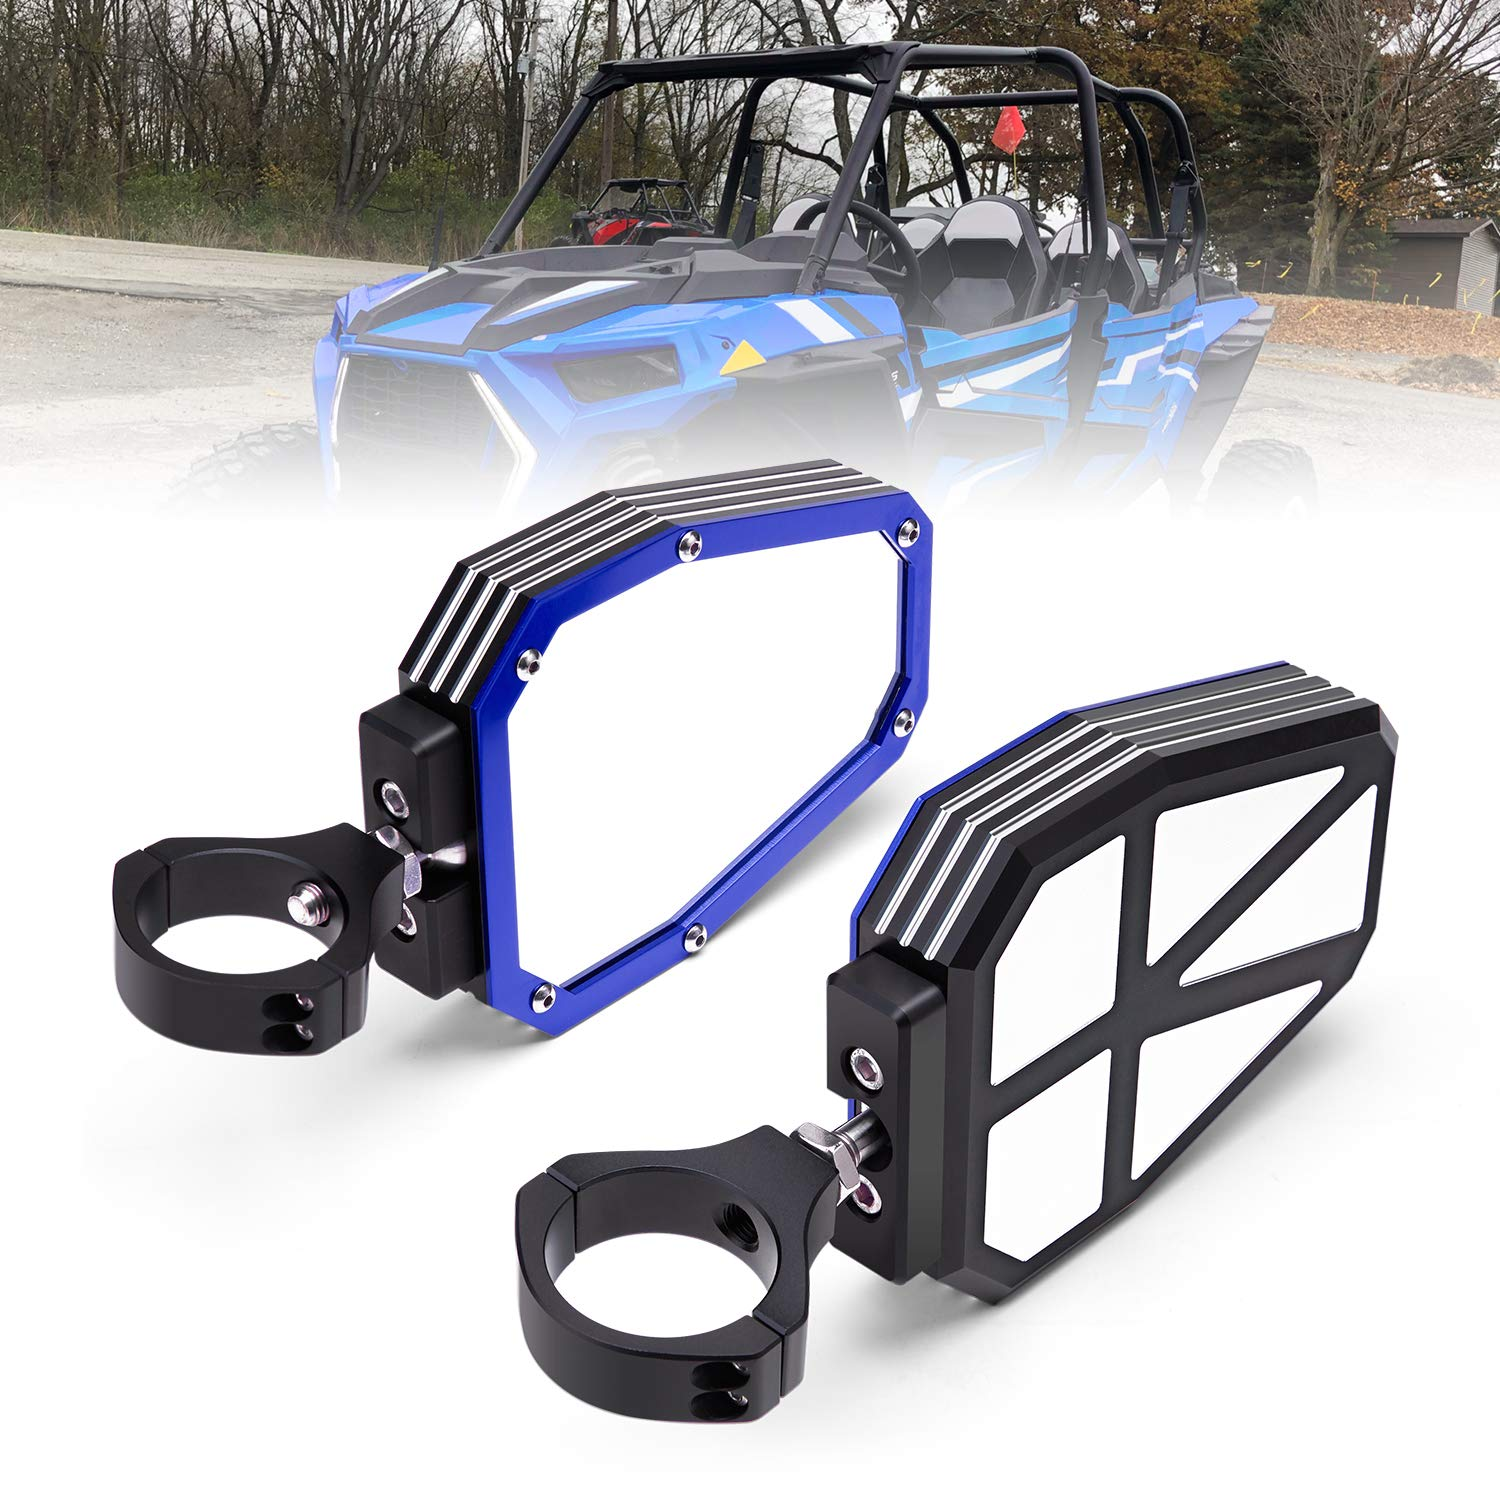 KEMIMOTO UTV Side View Mirrors for Polaris RZR 1000 900 Break Away with Ball Joint High Impact Shatter Proof Tempered Glass Blue Heavy Duty Aluminium Alloy Mirrors by kemimoto